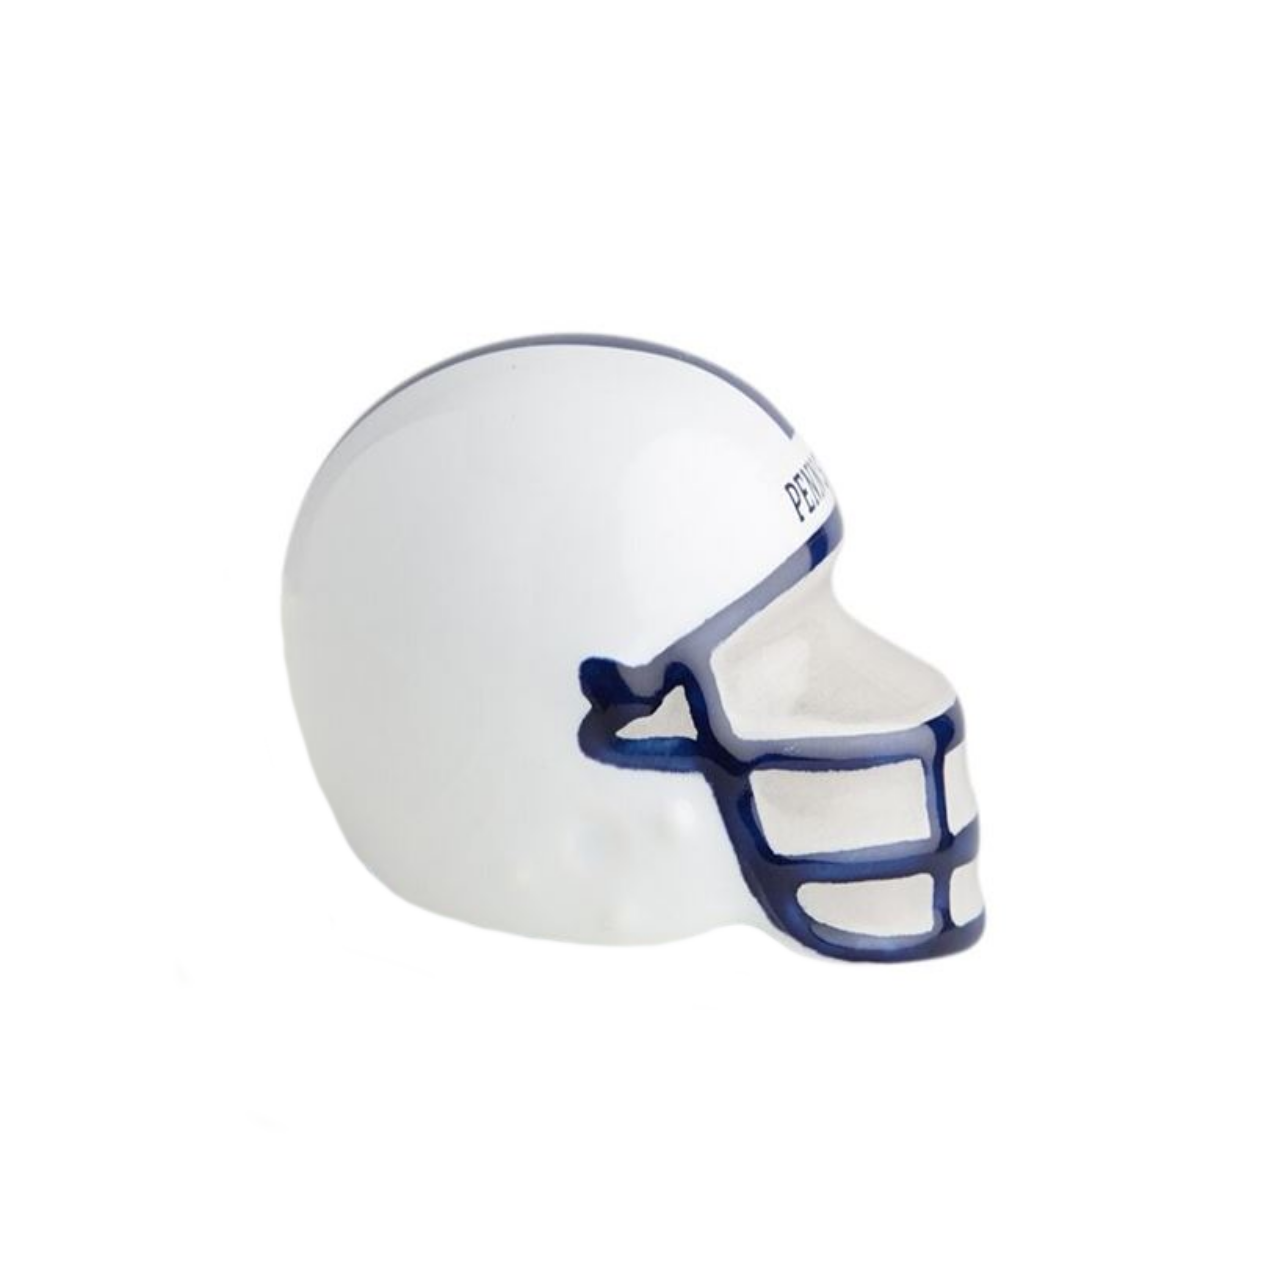 Penn State Helmet Mini by Nora Fleming